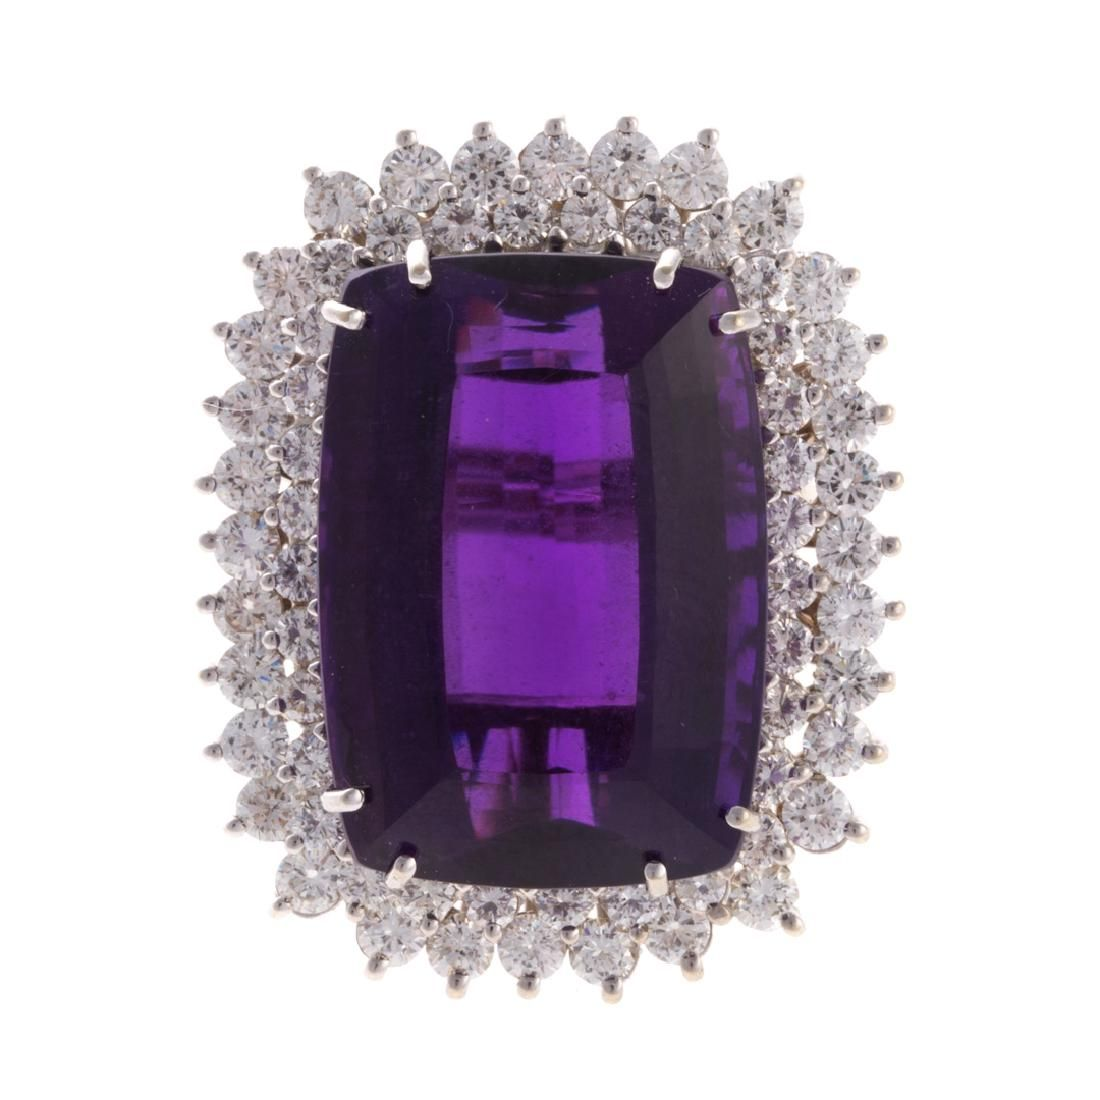 A Lady's Amethyst and Diamond Ring in 14K